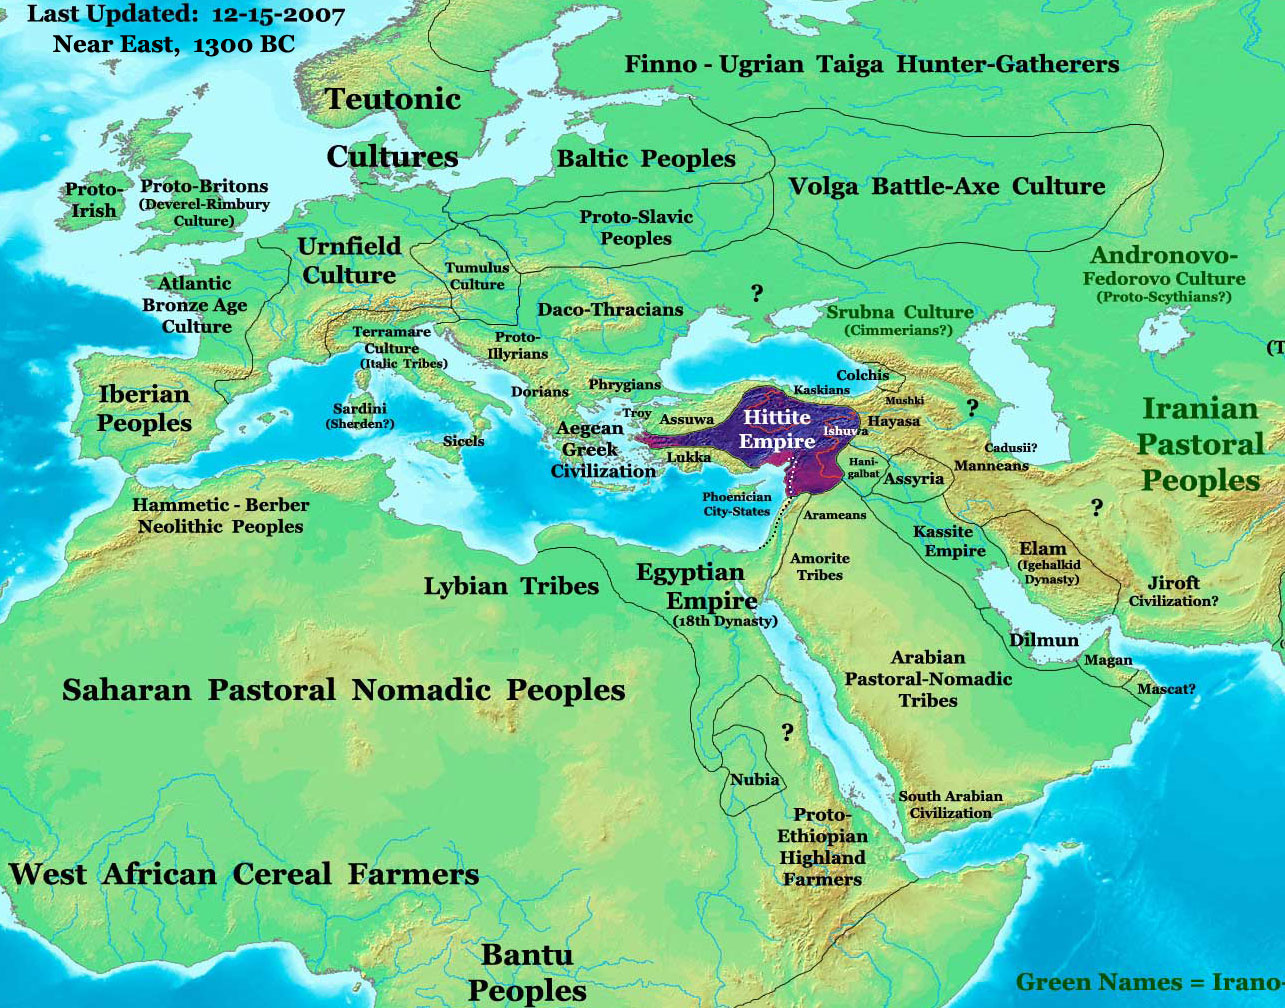 World history maps by thomas lessman hittite empire in 1300 bc ancient history maps gumiabroncs Image collections